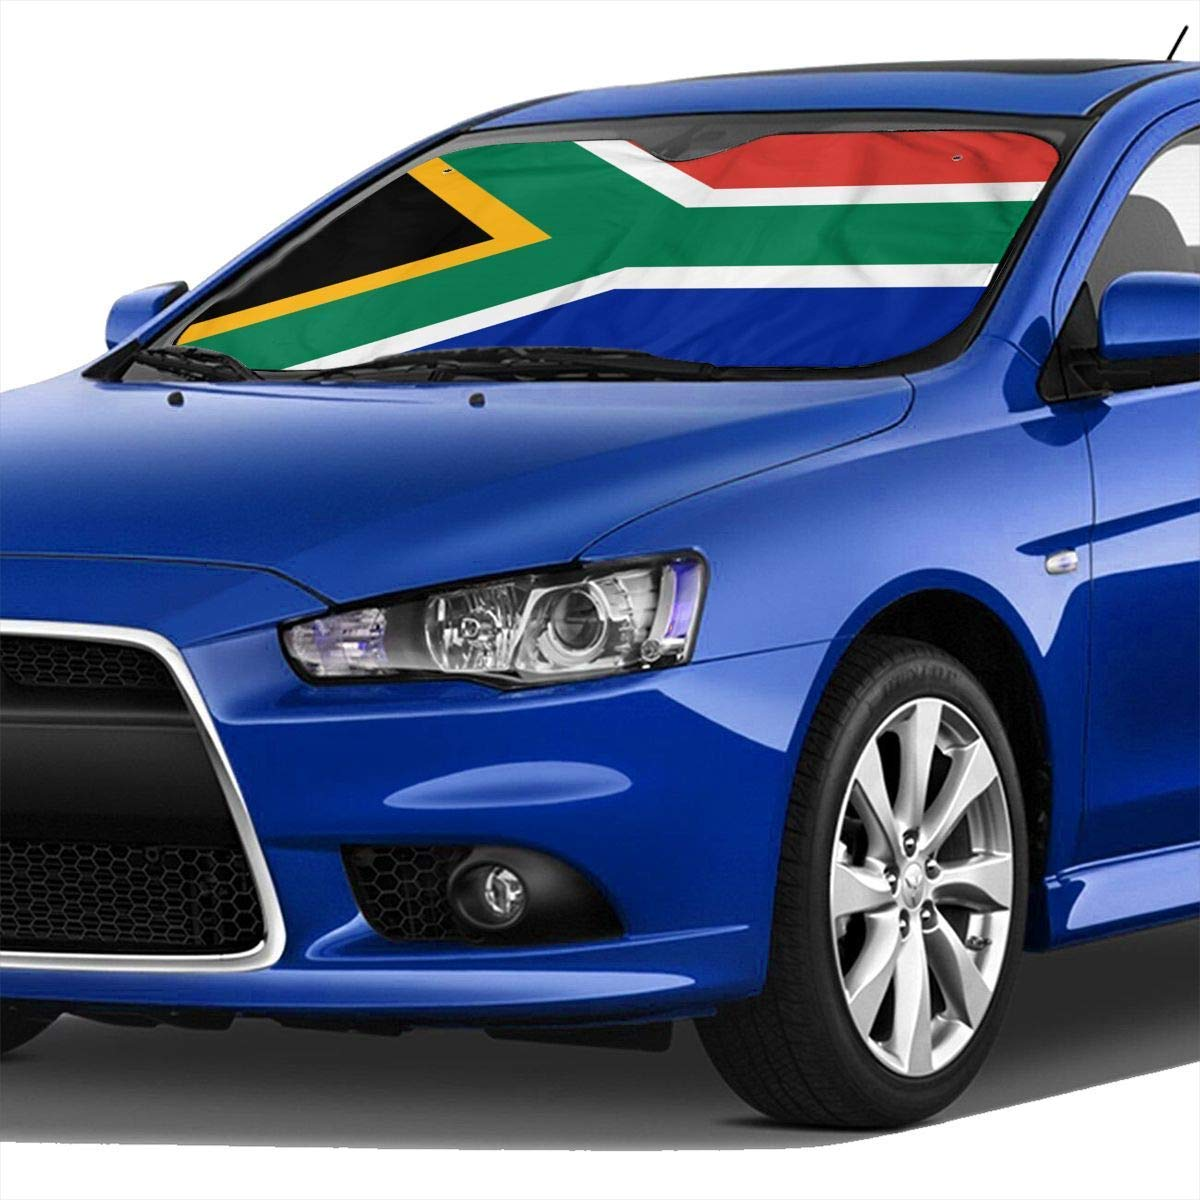 Comfort/&products South African Flag Car Windshield Sun Shades Universal Fit 70 X 30 cm,Car Truck SUV Vehicle Sunshade Front Windshield Fashion